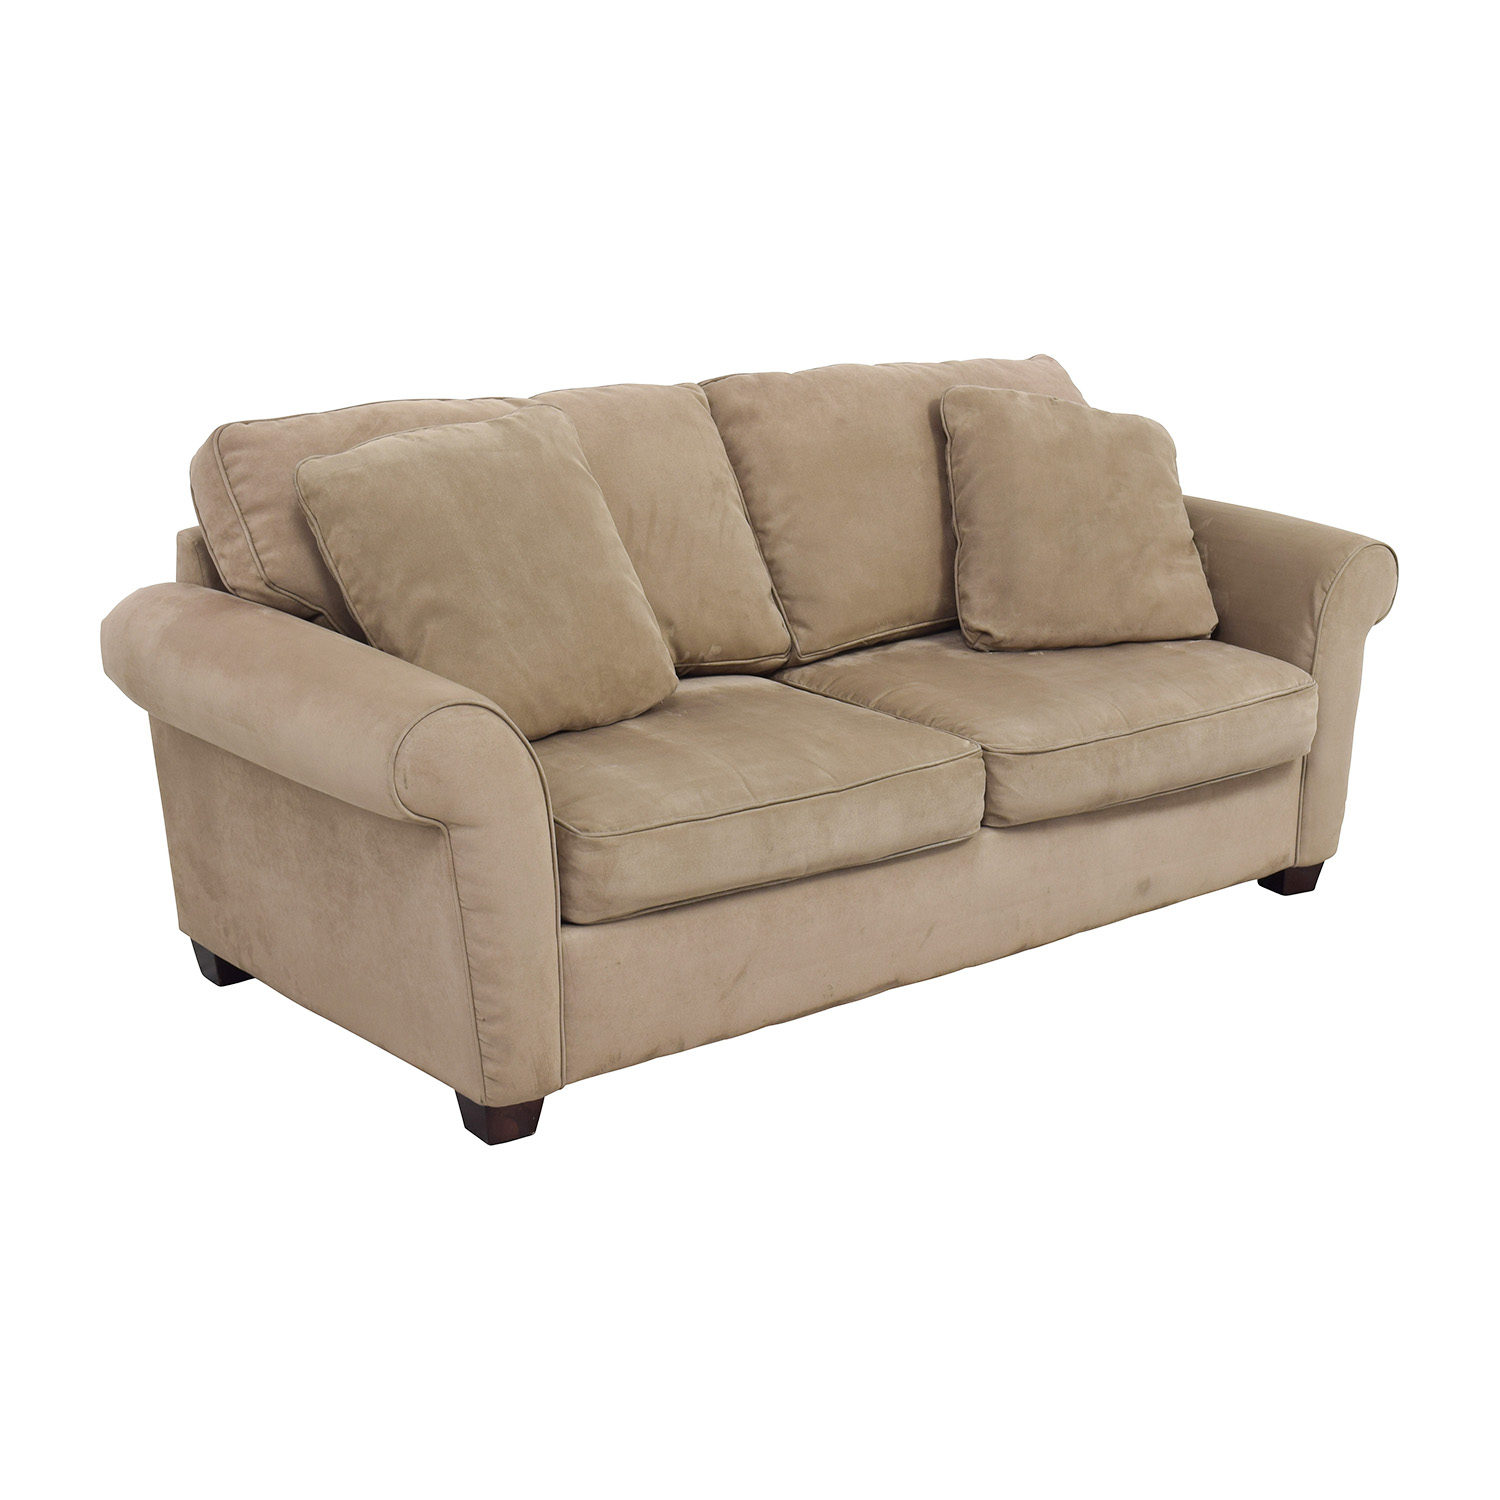 72 off bauhaus bauhaus microfiber tan oversized couch for Bauhaus sofa bed